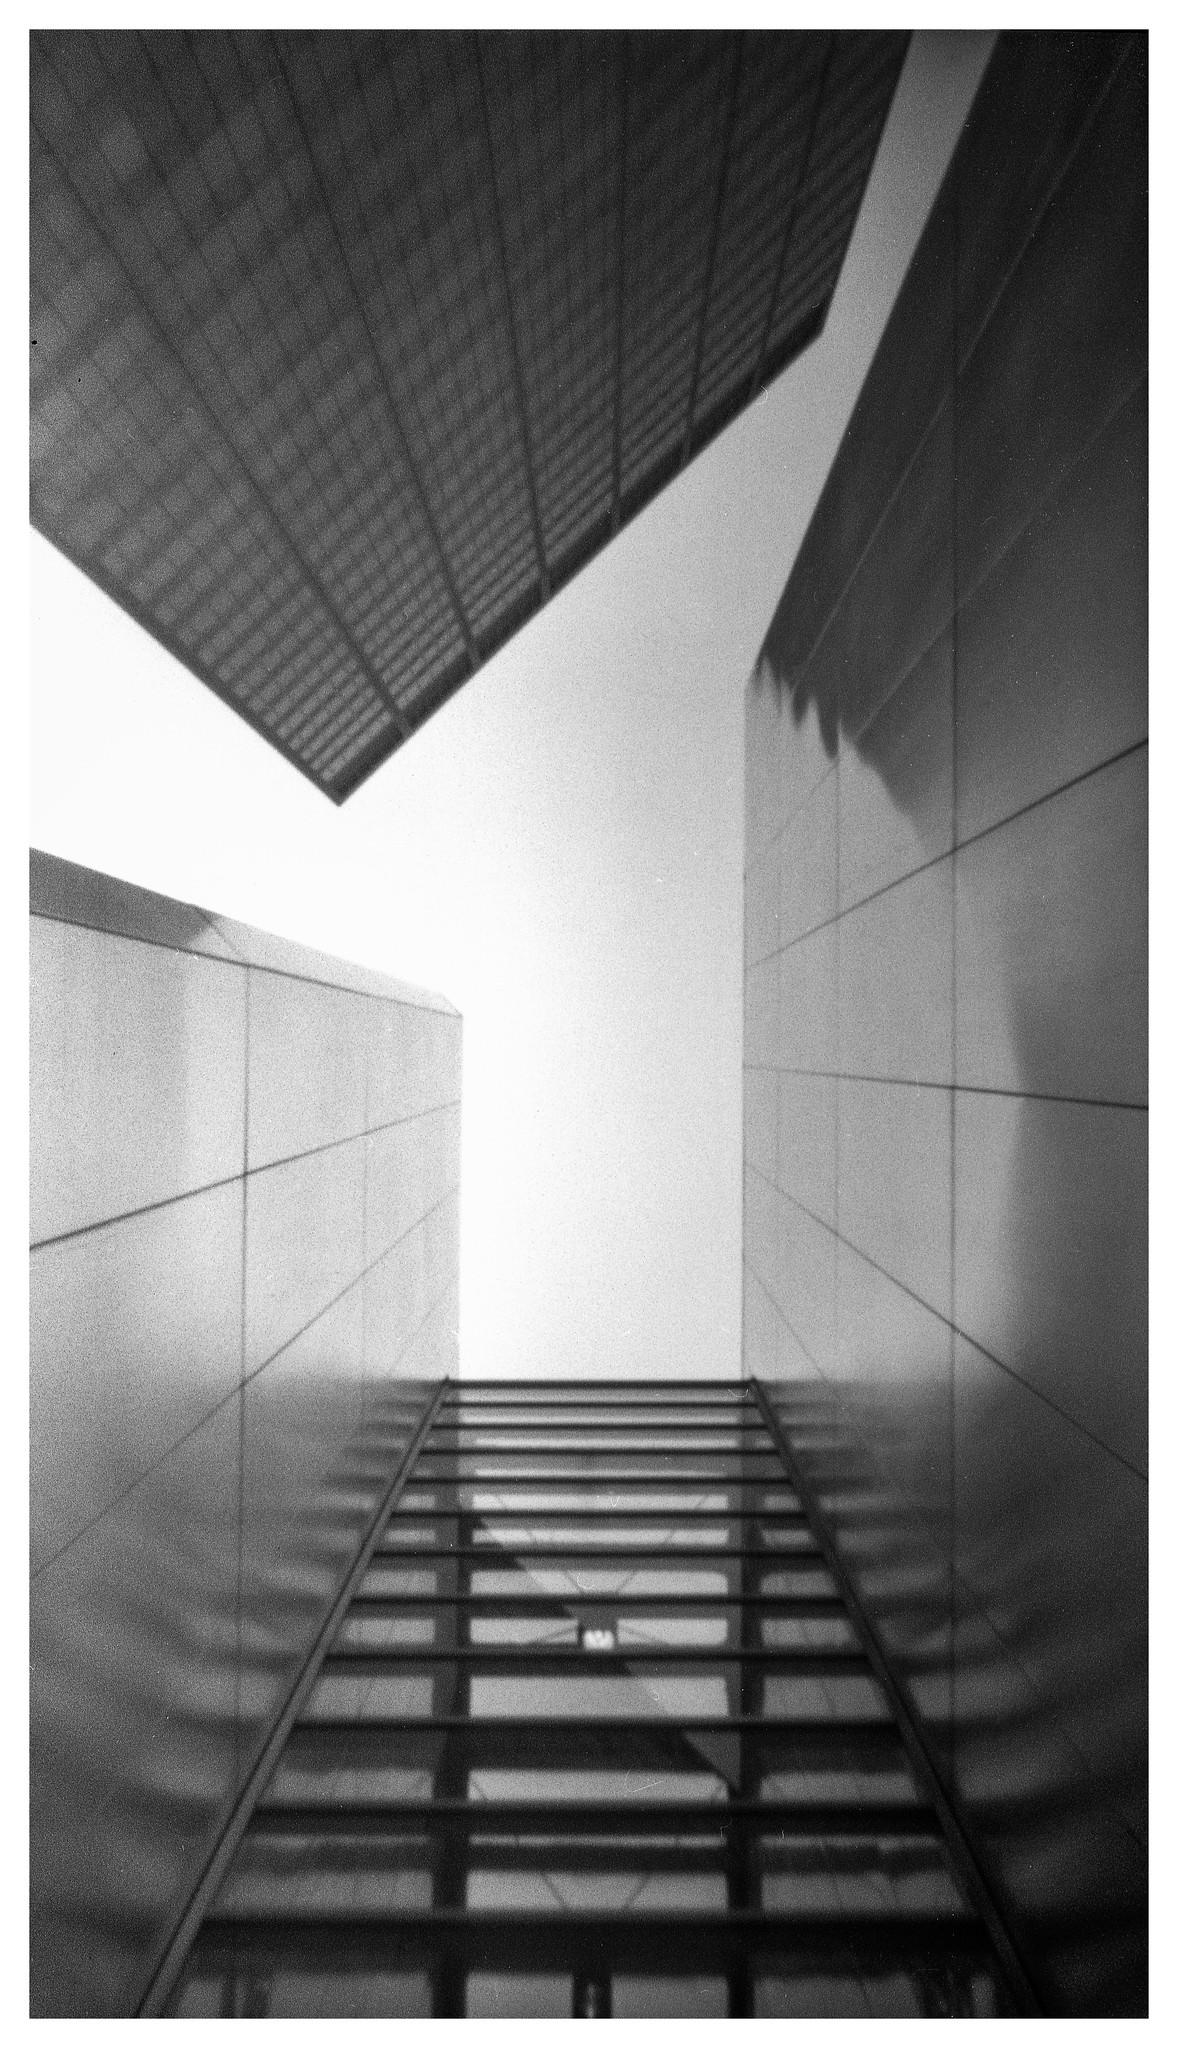 Looking Up - NOON 612 Pinhole with HP5+ film